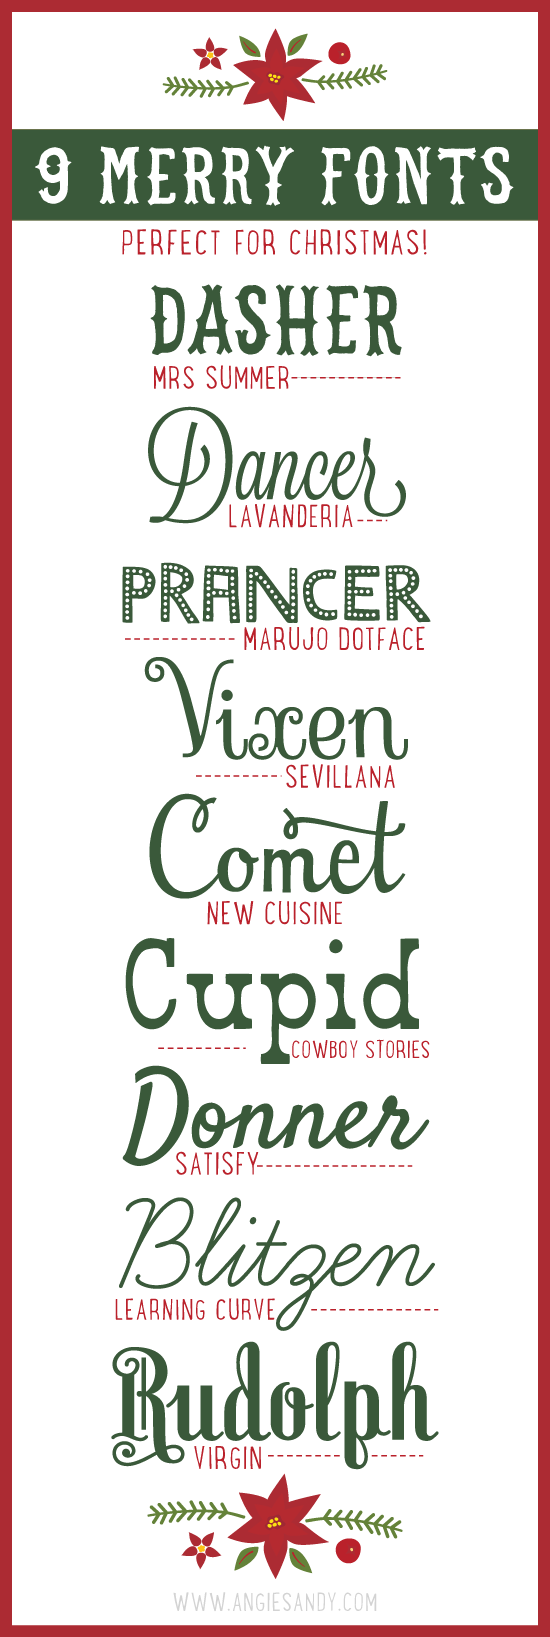 9 Merry Fonts for Christmas